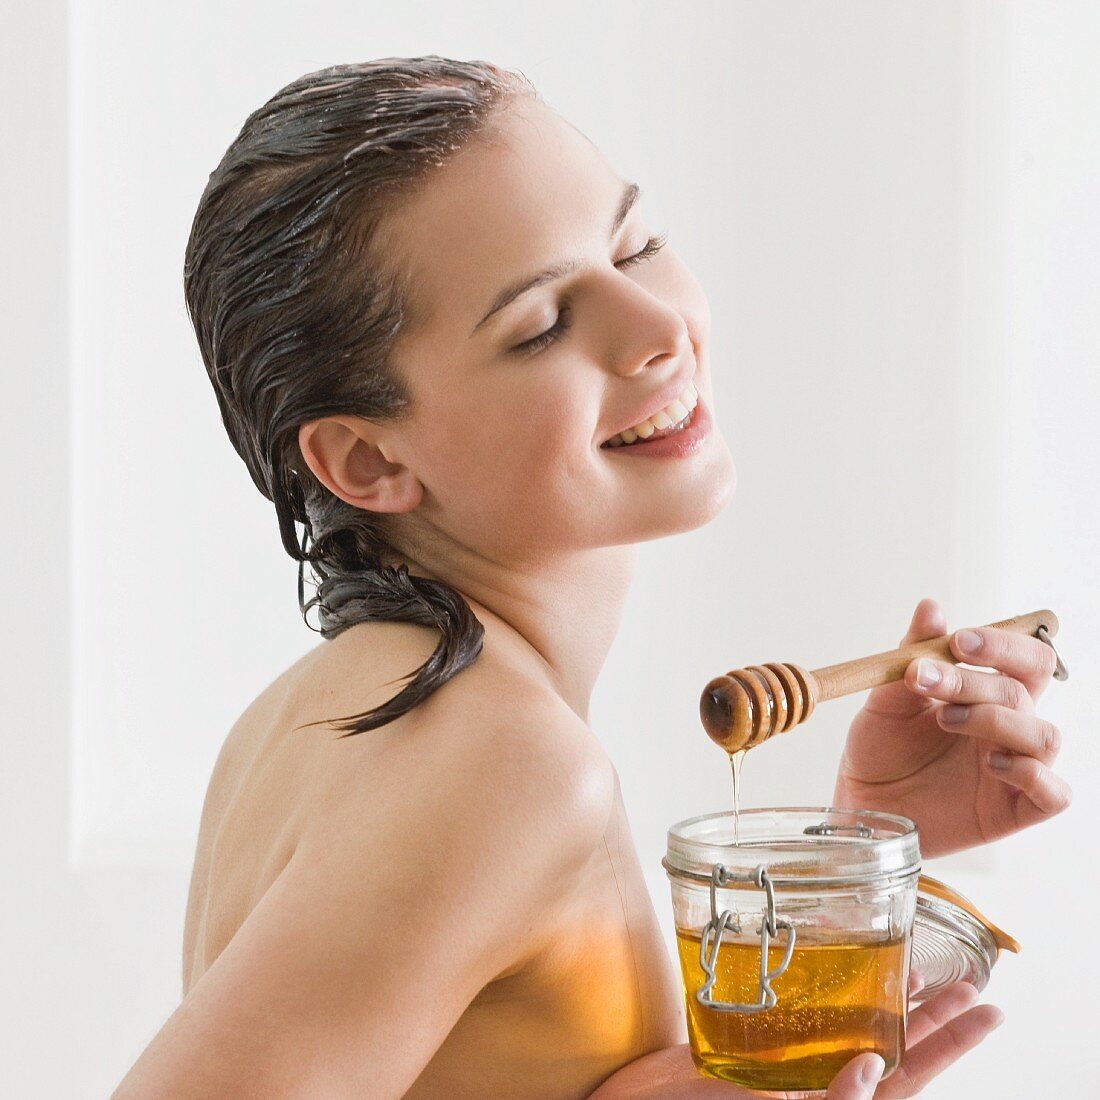 A young woman with a jar of honey and a honey spoon